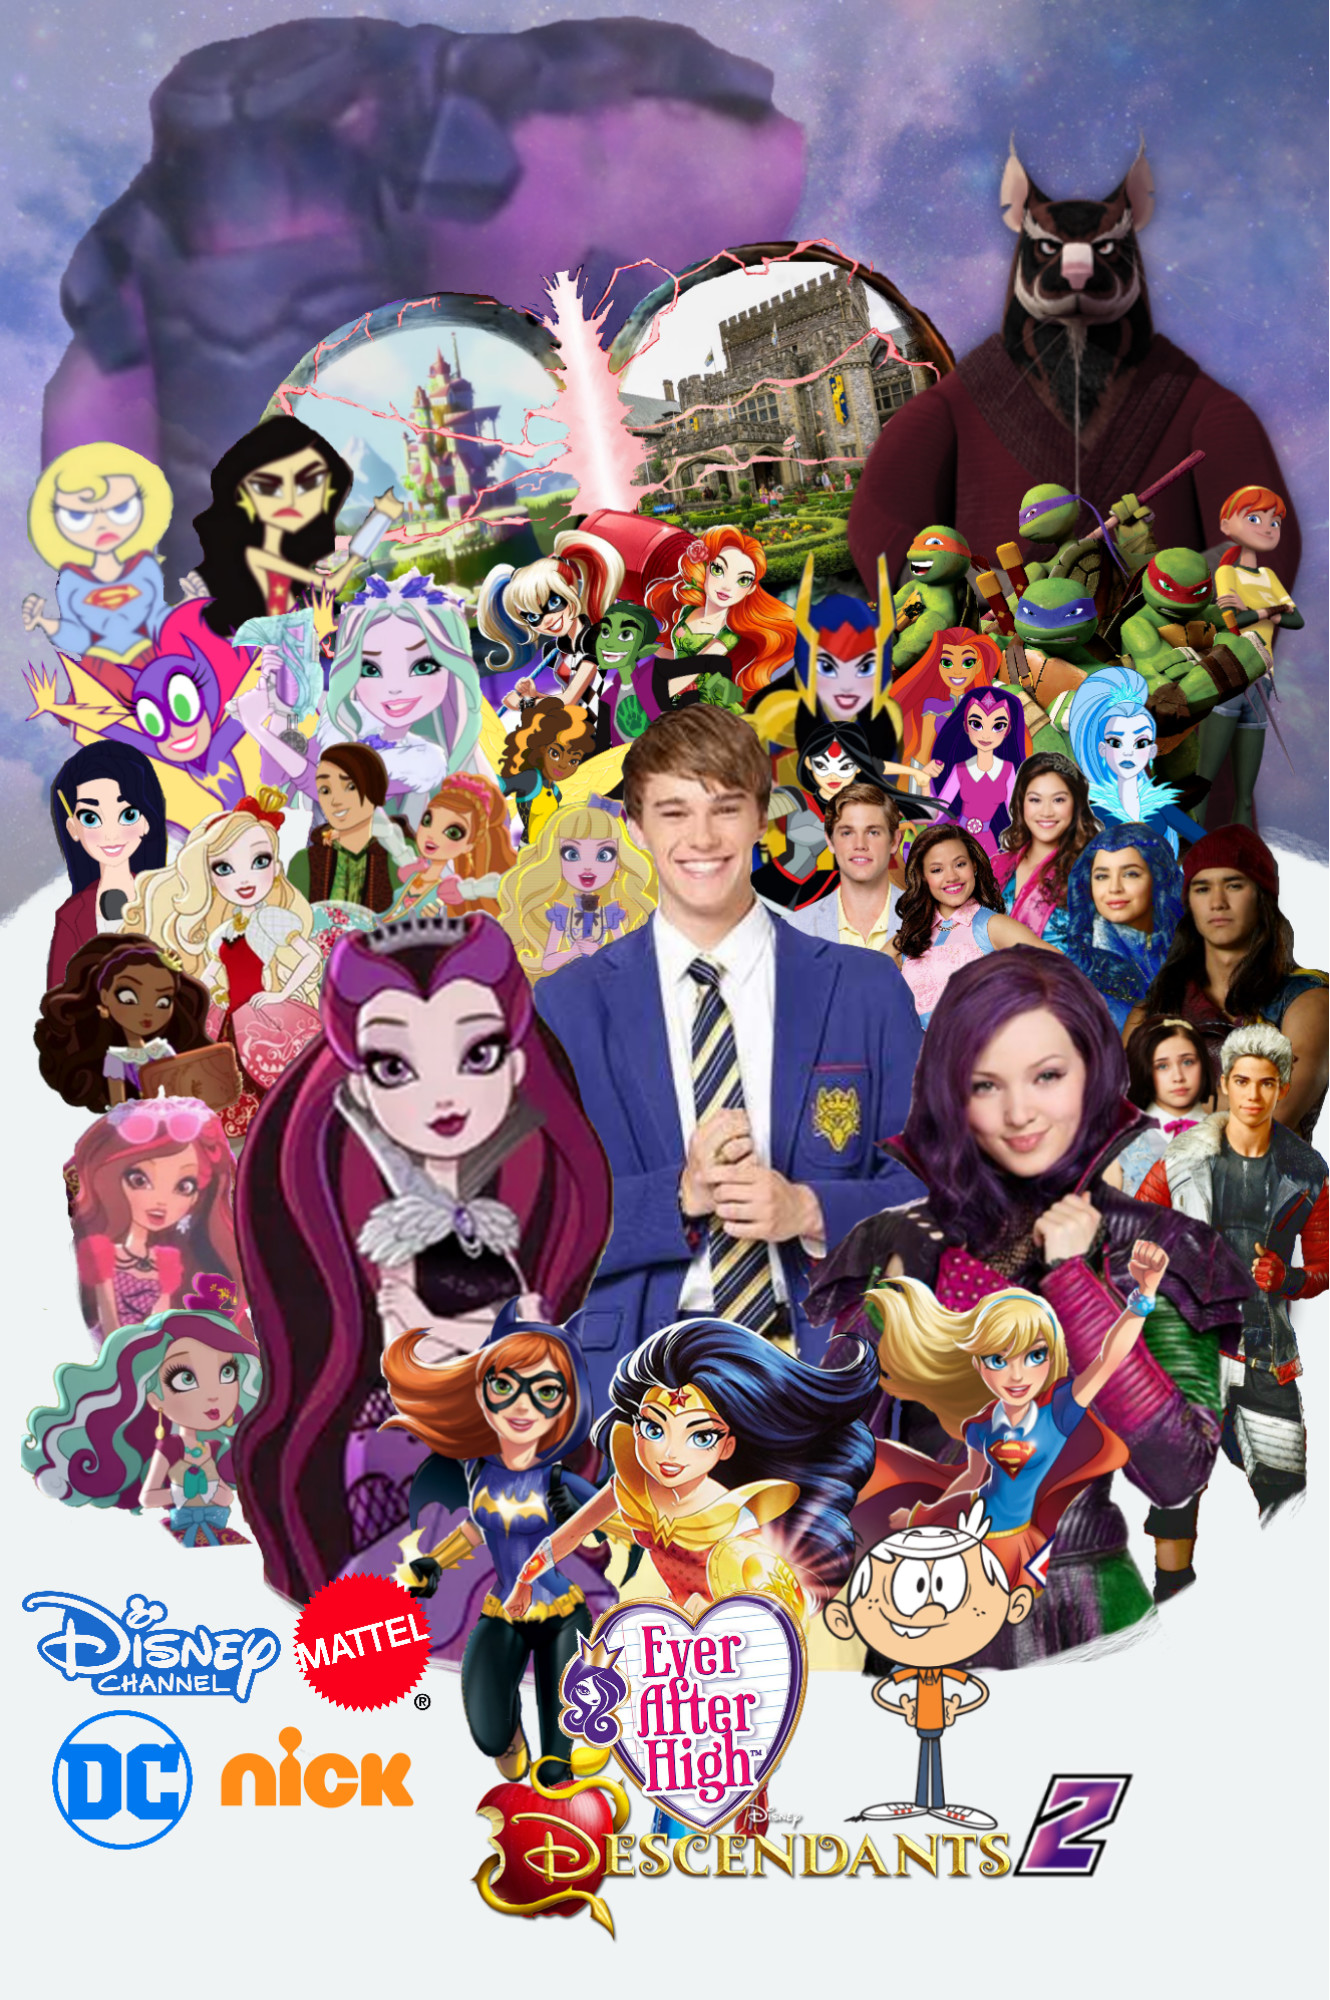 … AwesomeOKingGuy0123 Ever After High X Disney's Descendants 2 by  AwesomeOKingGuy0123